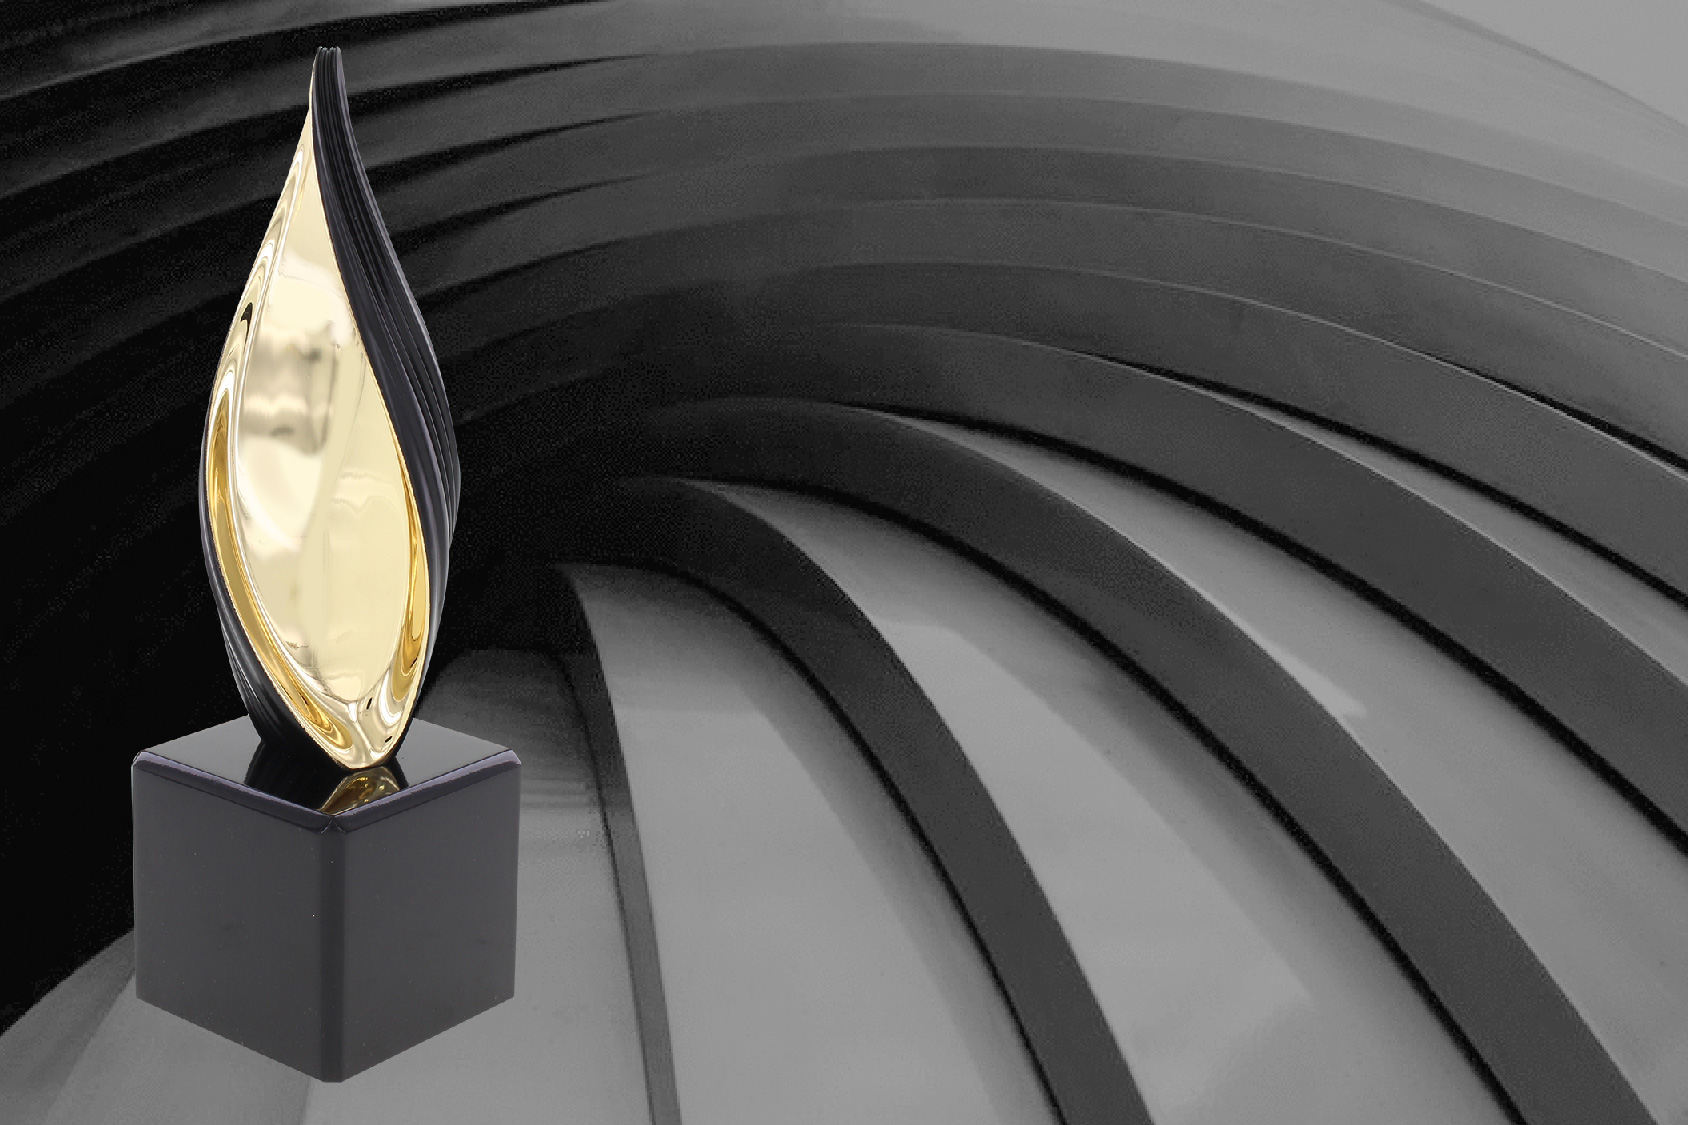 Black and gold luxury metal trophy